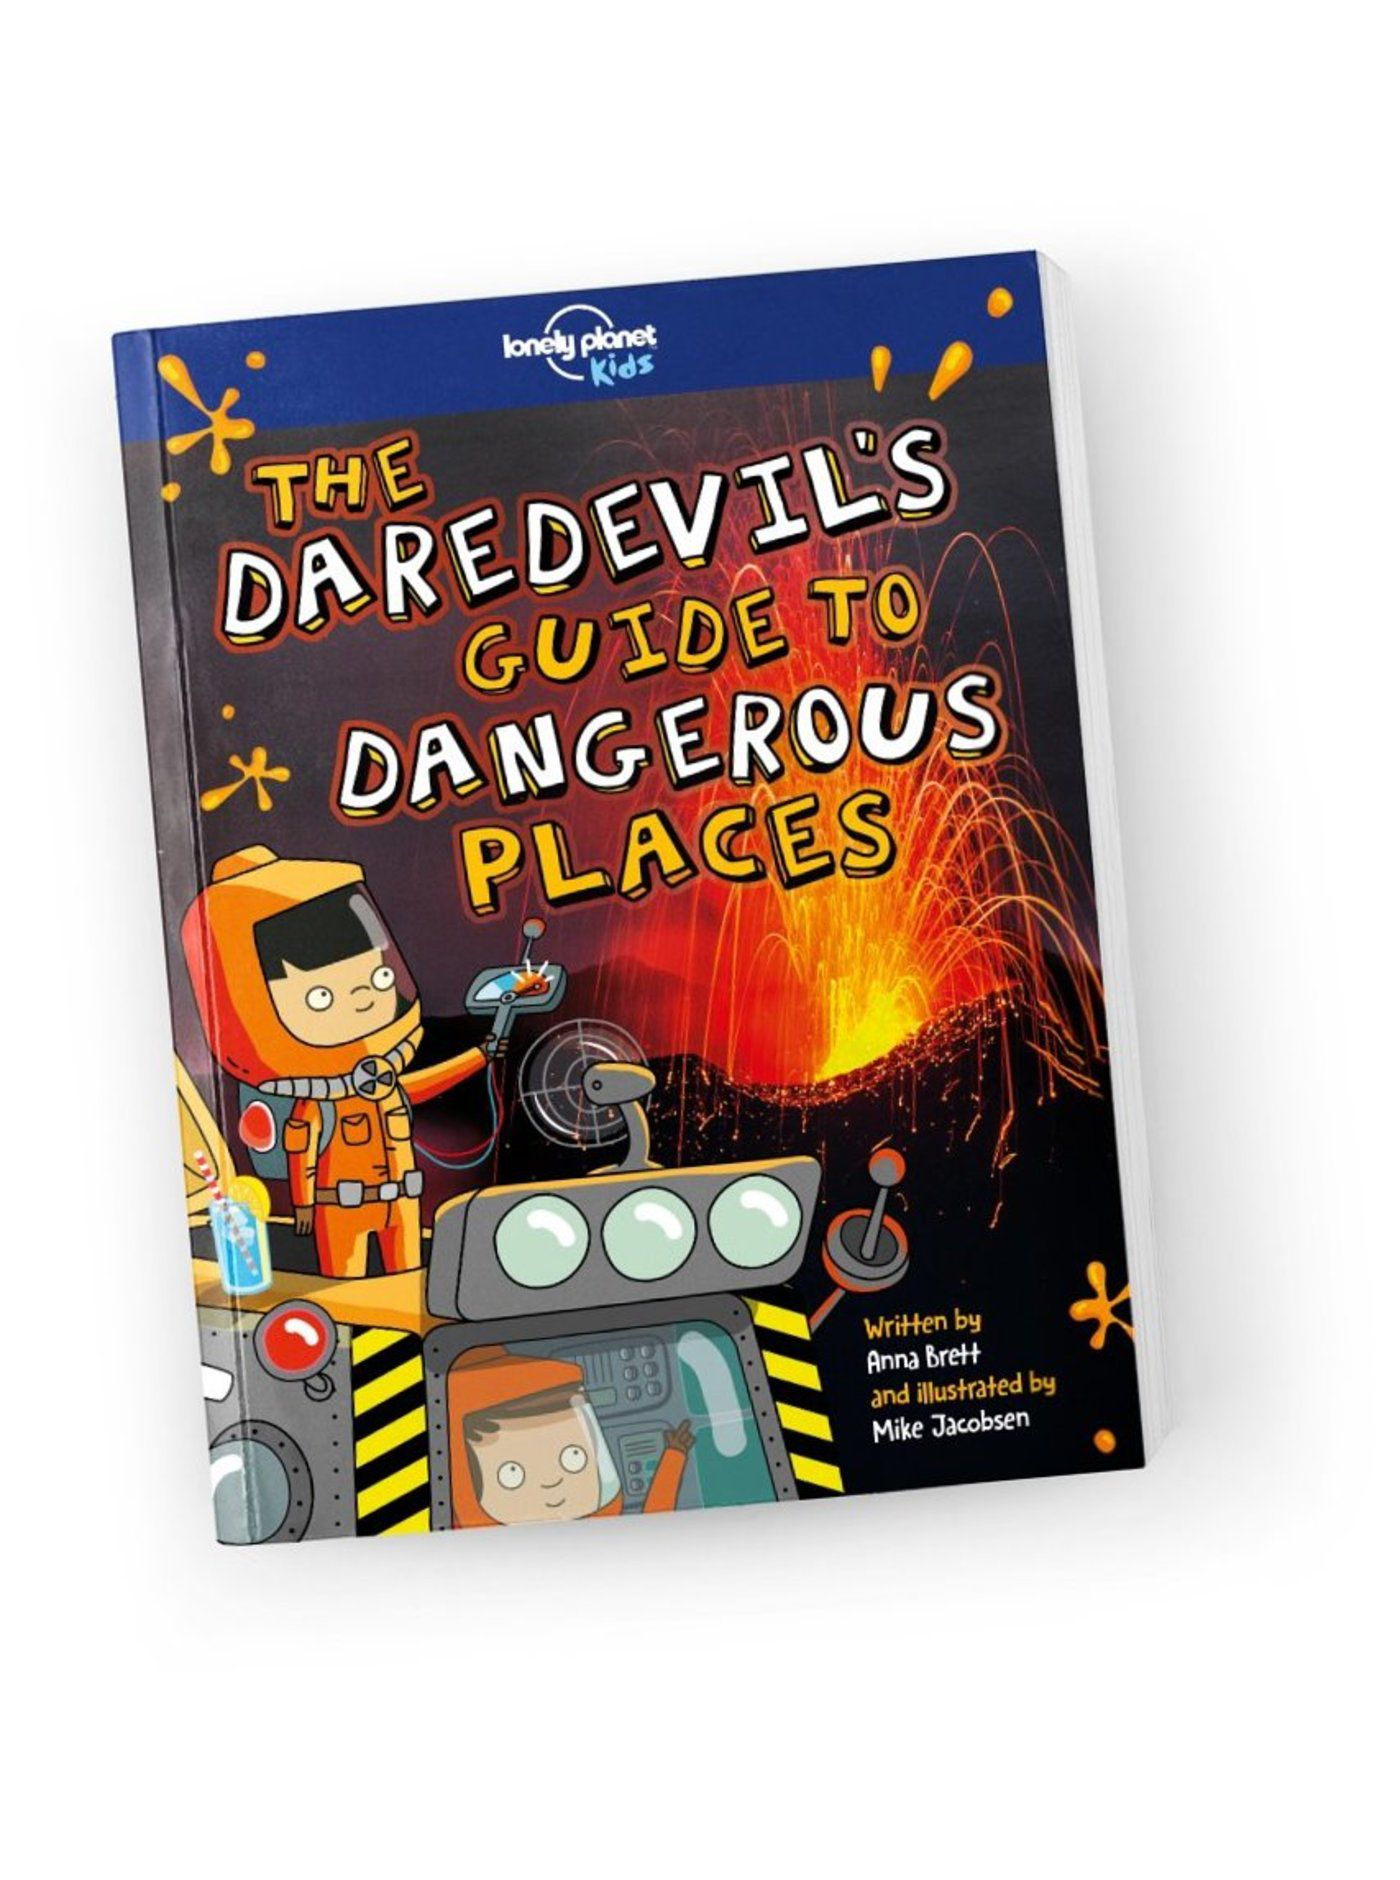 The Daredevil's Guide to Dangerous Places